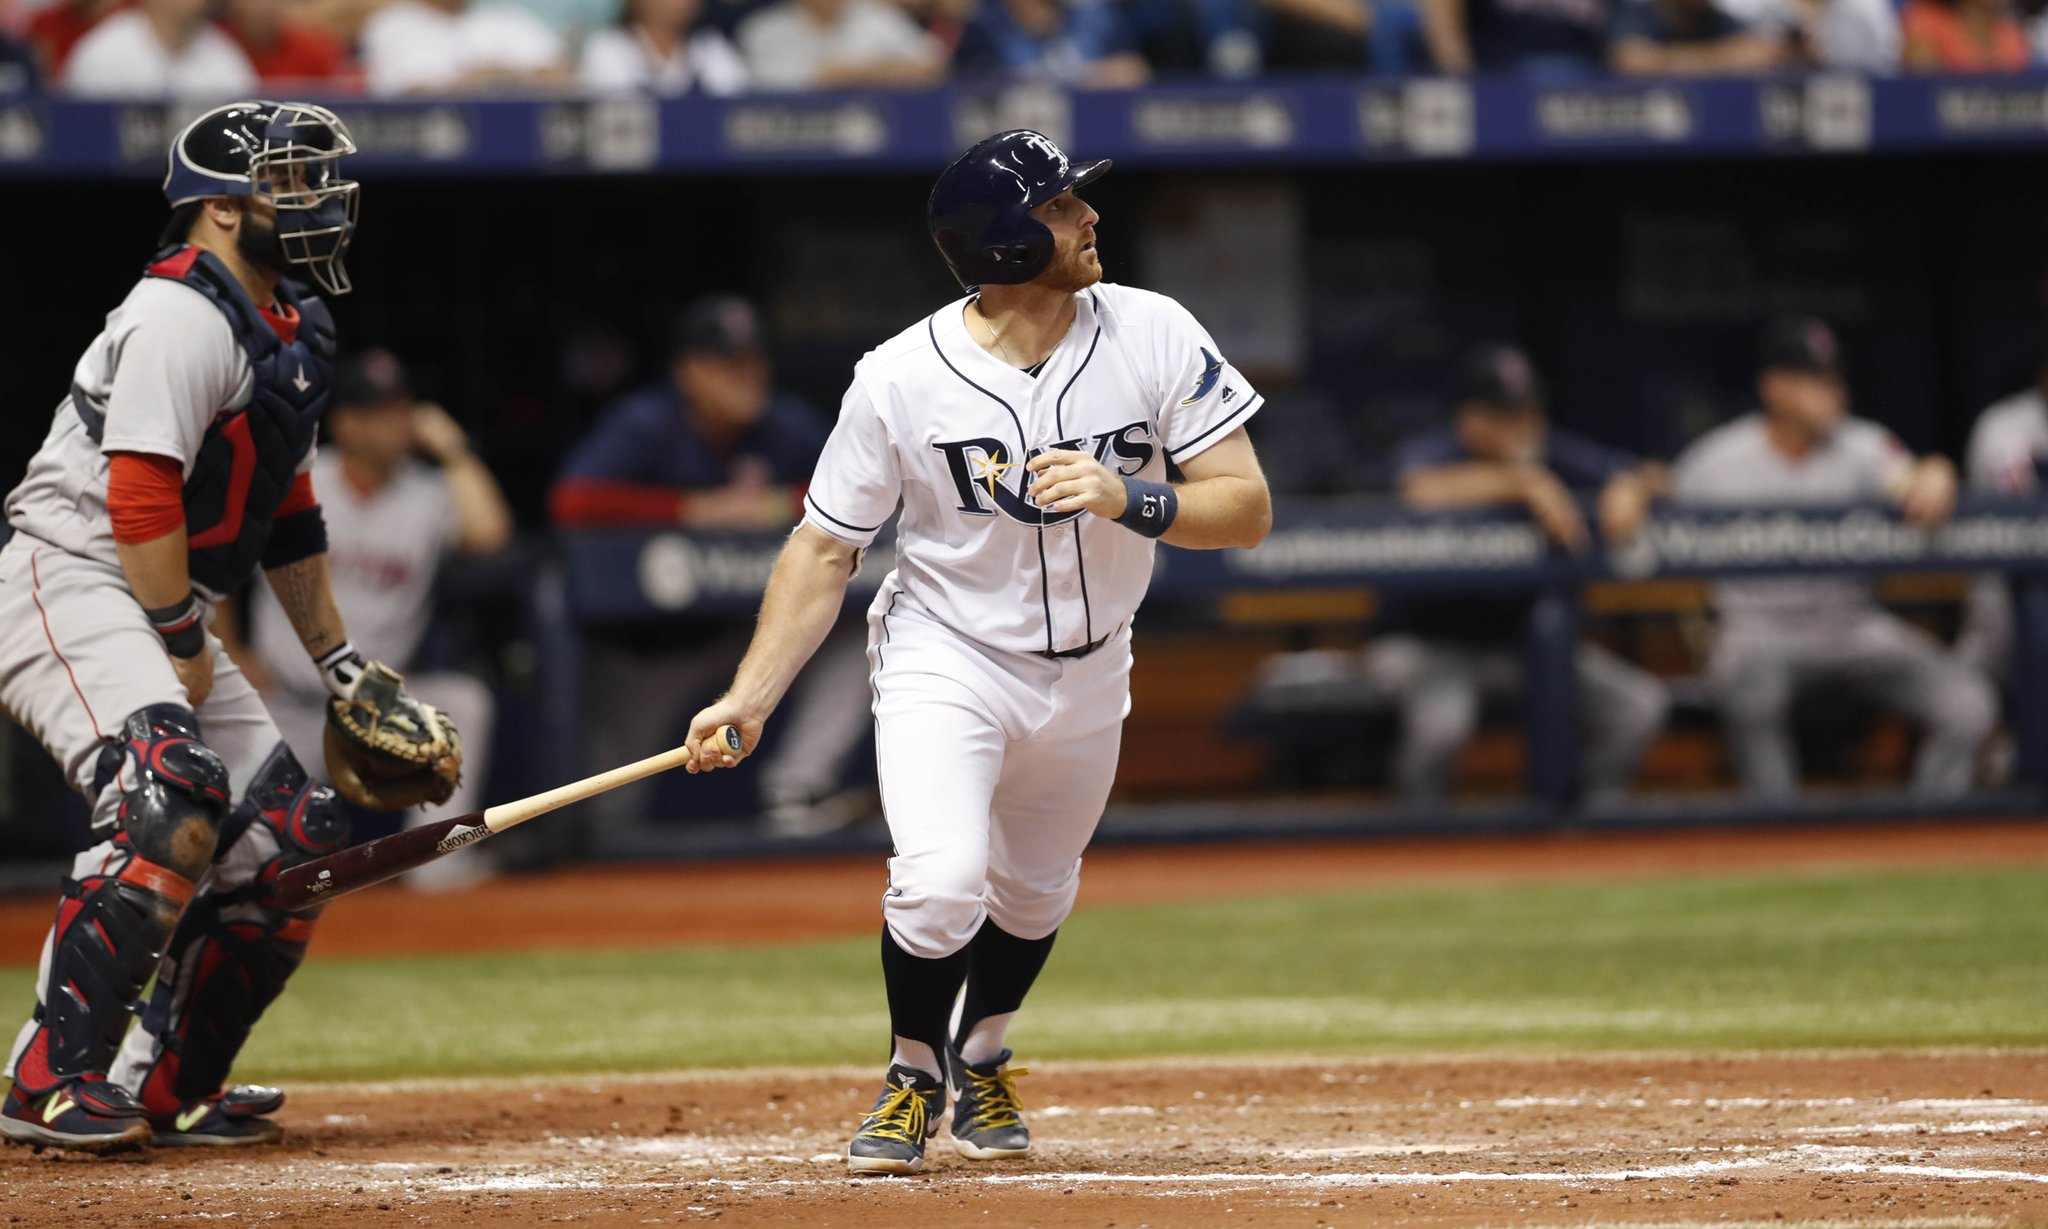 Brad Miller's 80 RBI are two shy of his total for the past two seasons combined. (Photo Credit: Tampa Bay Rays)